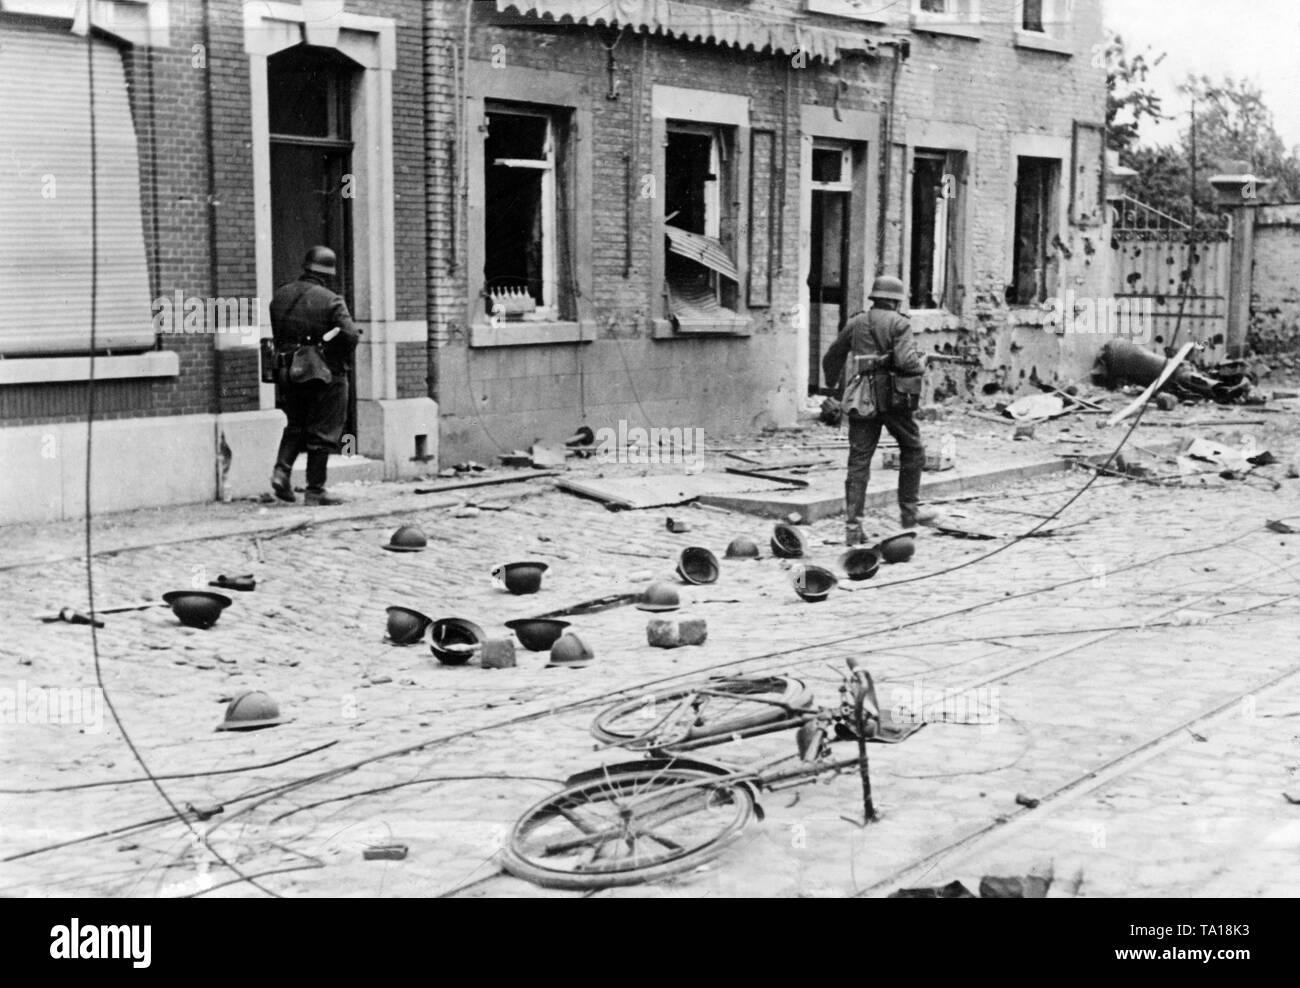 Two German infantrymen go through a French town. A dead horse and abandoned steel helmets testify the retreat of the French troops. Stock Photo